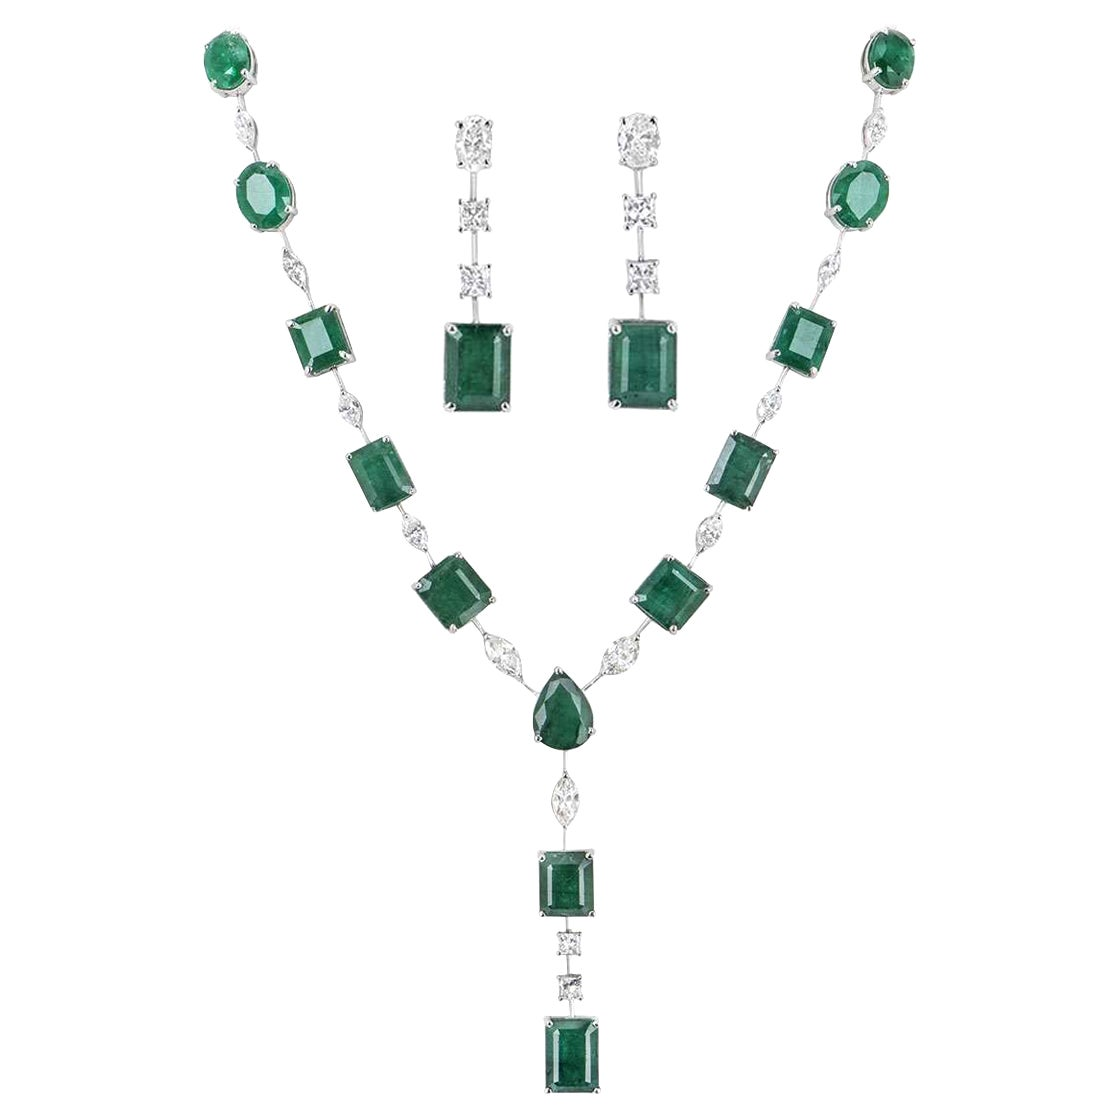 Emerald and Diamond Jewelry Suite with Choker Necklace and Earrings